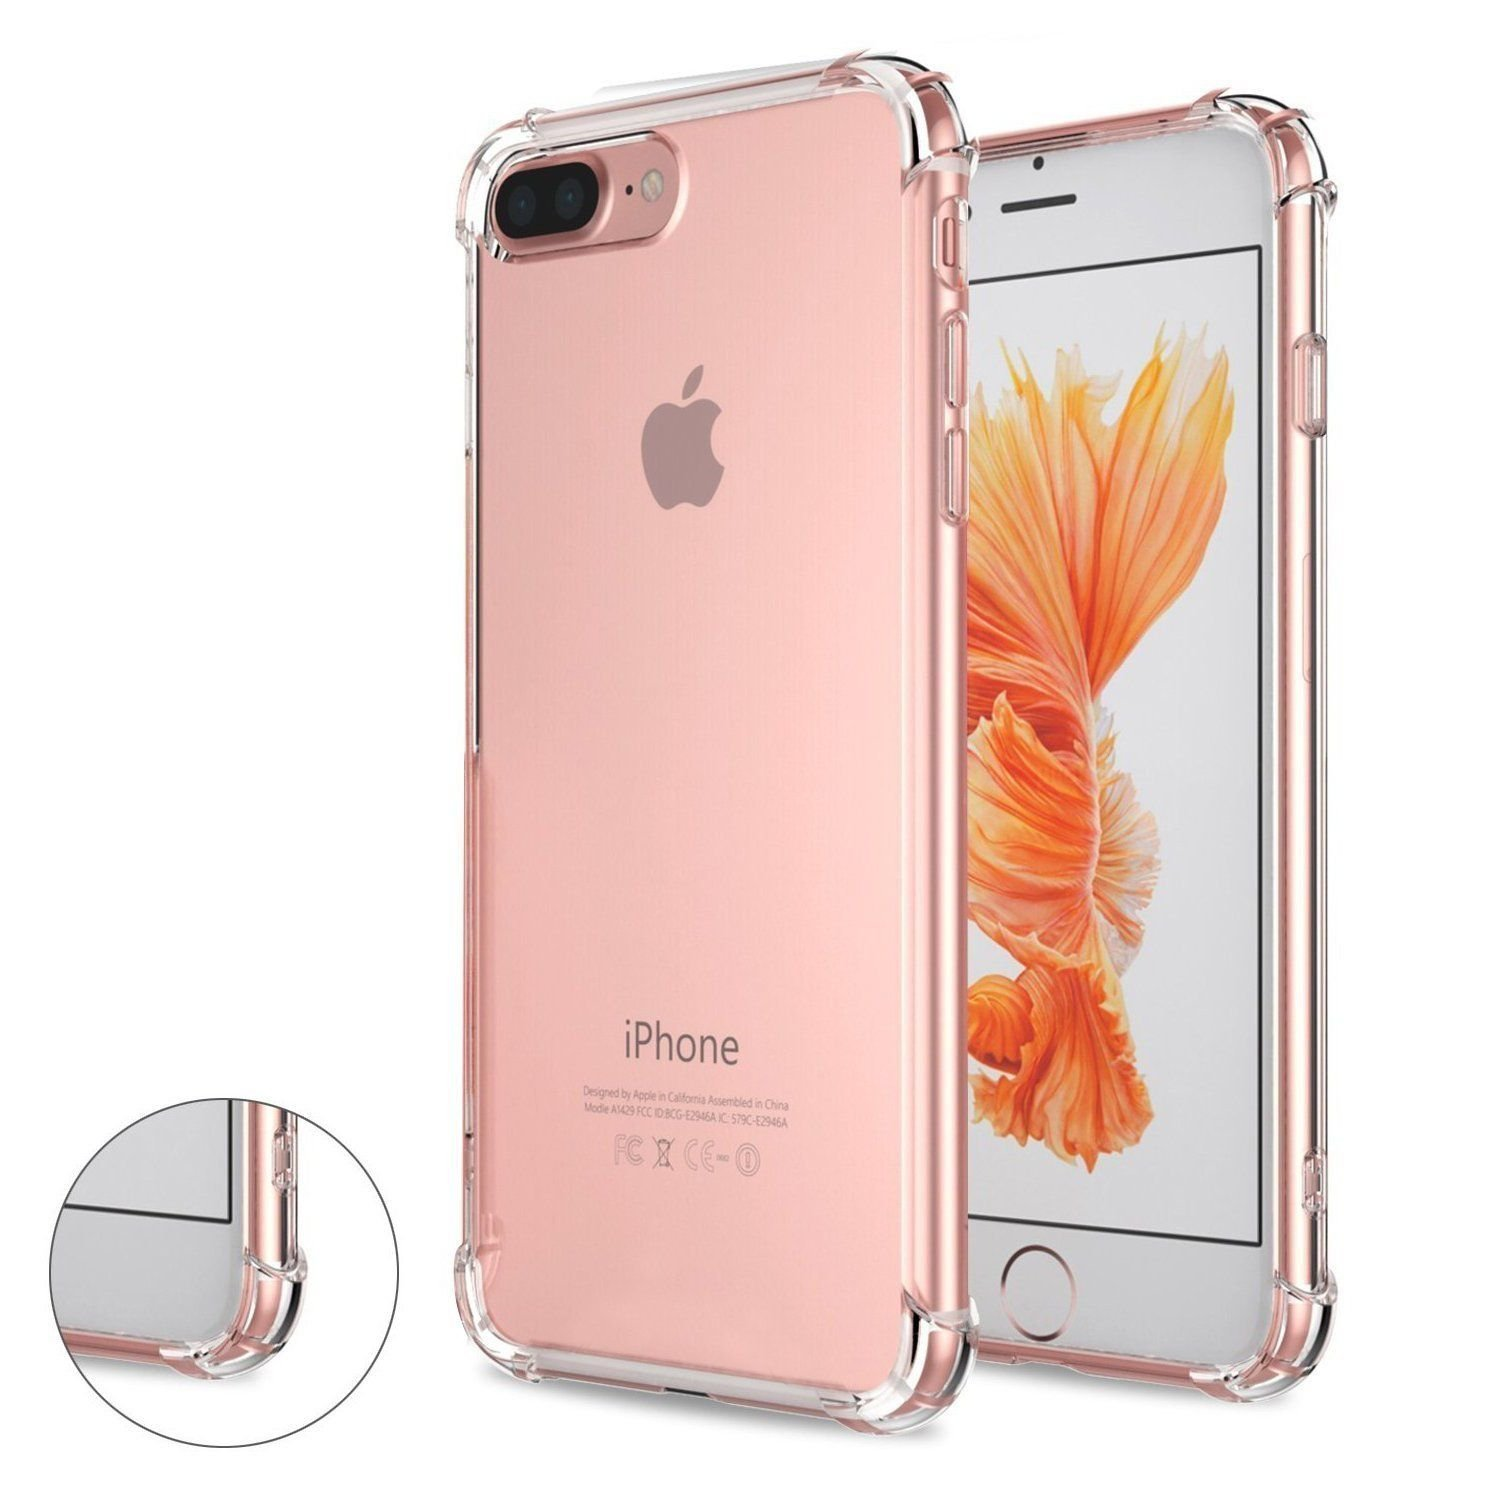 new concept 3c2e0 aa886 Speira iPhone 8 Plus/iPhone 7 Plus Transparent Case with Reinforced  Corners, [Anti-Discoloration] [No-Slip Grip] (Clear)